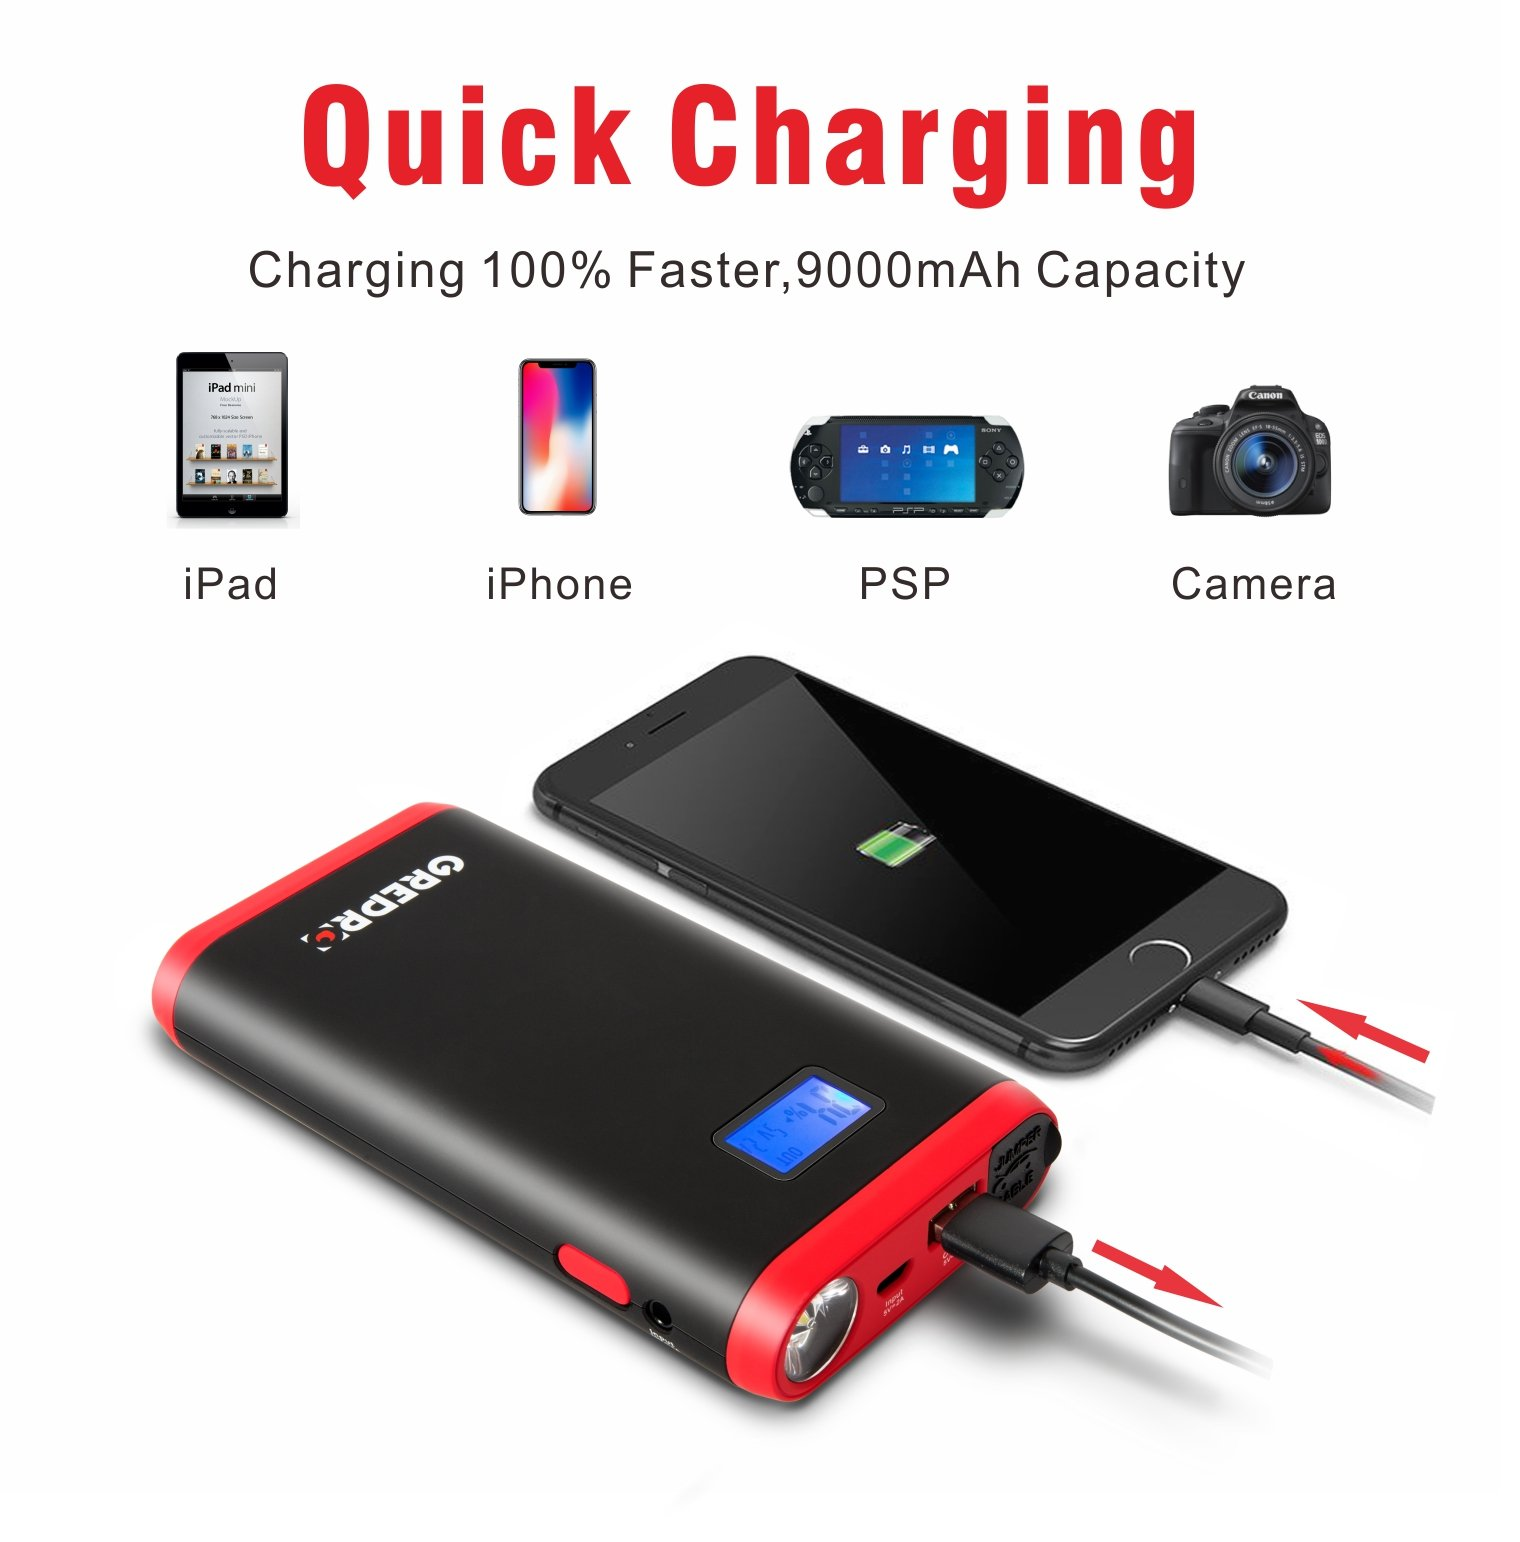 GREPRO Car Jump Starter 500A 12V Vehicle (Up to 4.5L Gas, 2.5L Diesel Engine) Smart Jumper Cable, Auto Battery Booster LED Flashlight, 9000mAh Portable Power Pack Quick Charge by GREPRO (Image #3)